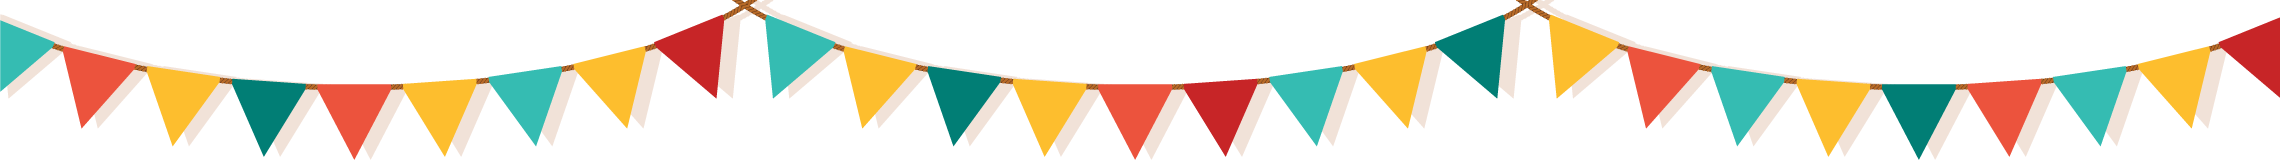 Pennant banner decoration